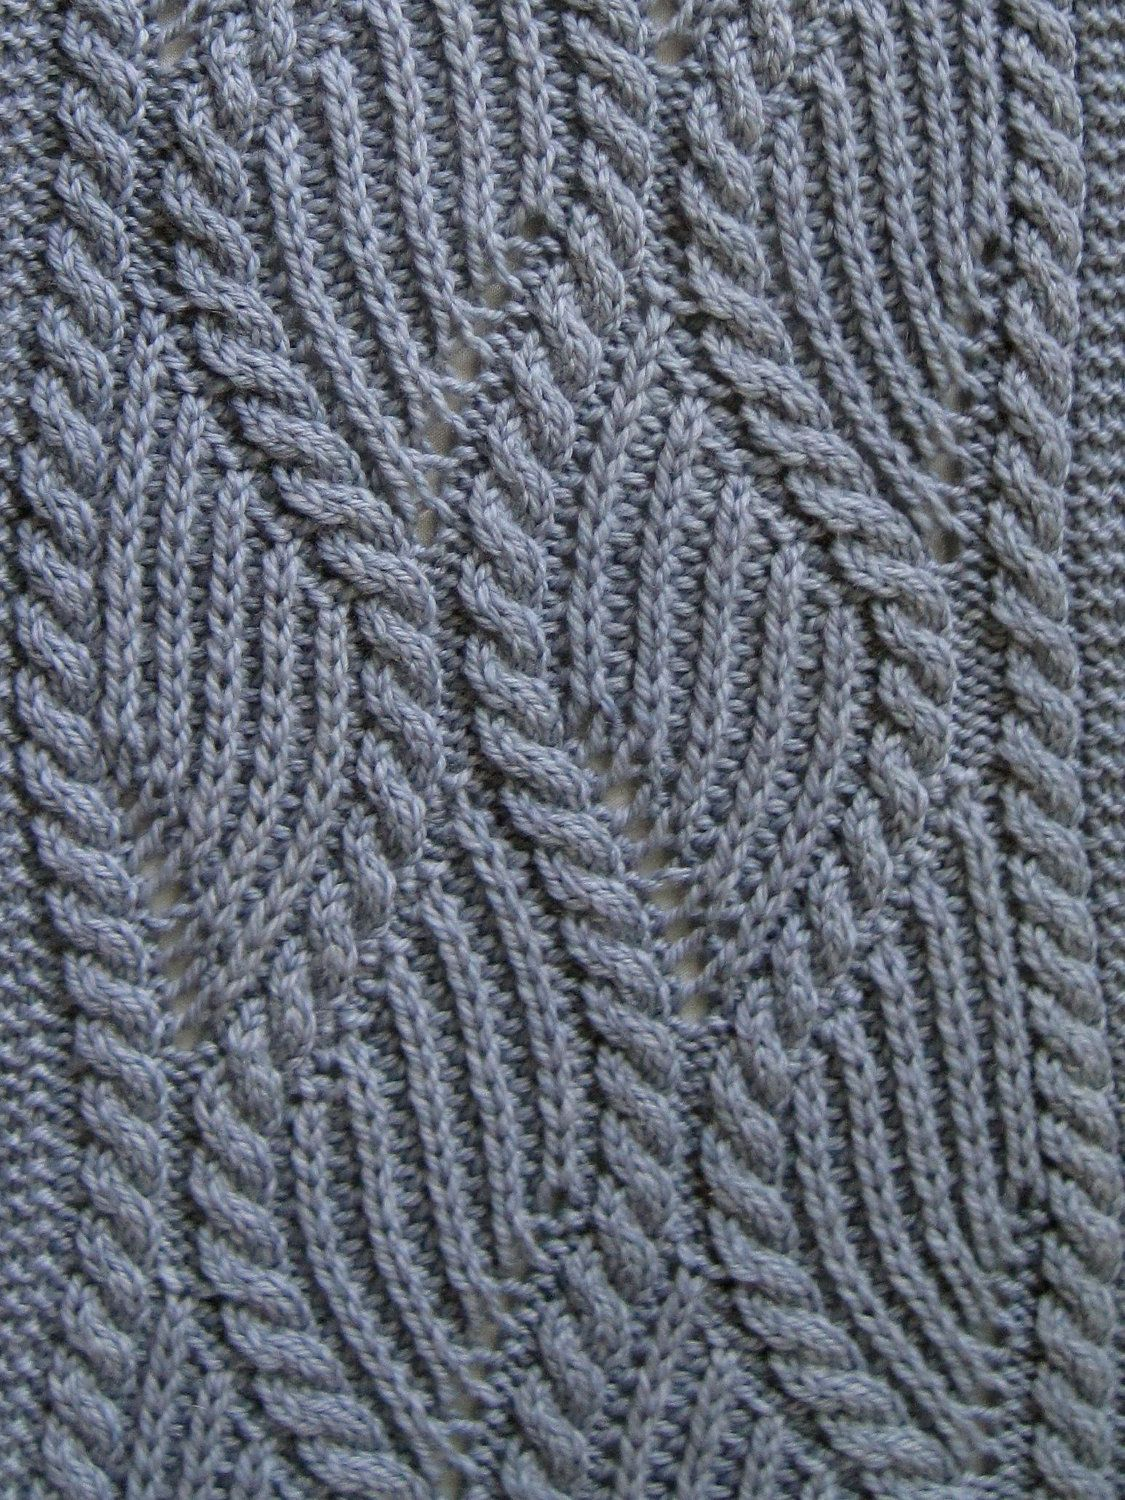 Knit scarf pattern brioche and traveling cable knitting scarf knit scarf pattern brioche and traveling cable knitting scarf pattern bankloansurffo Image collections